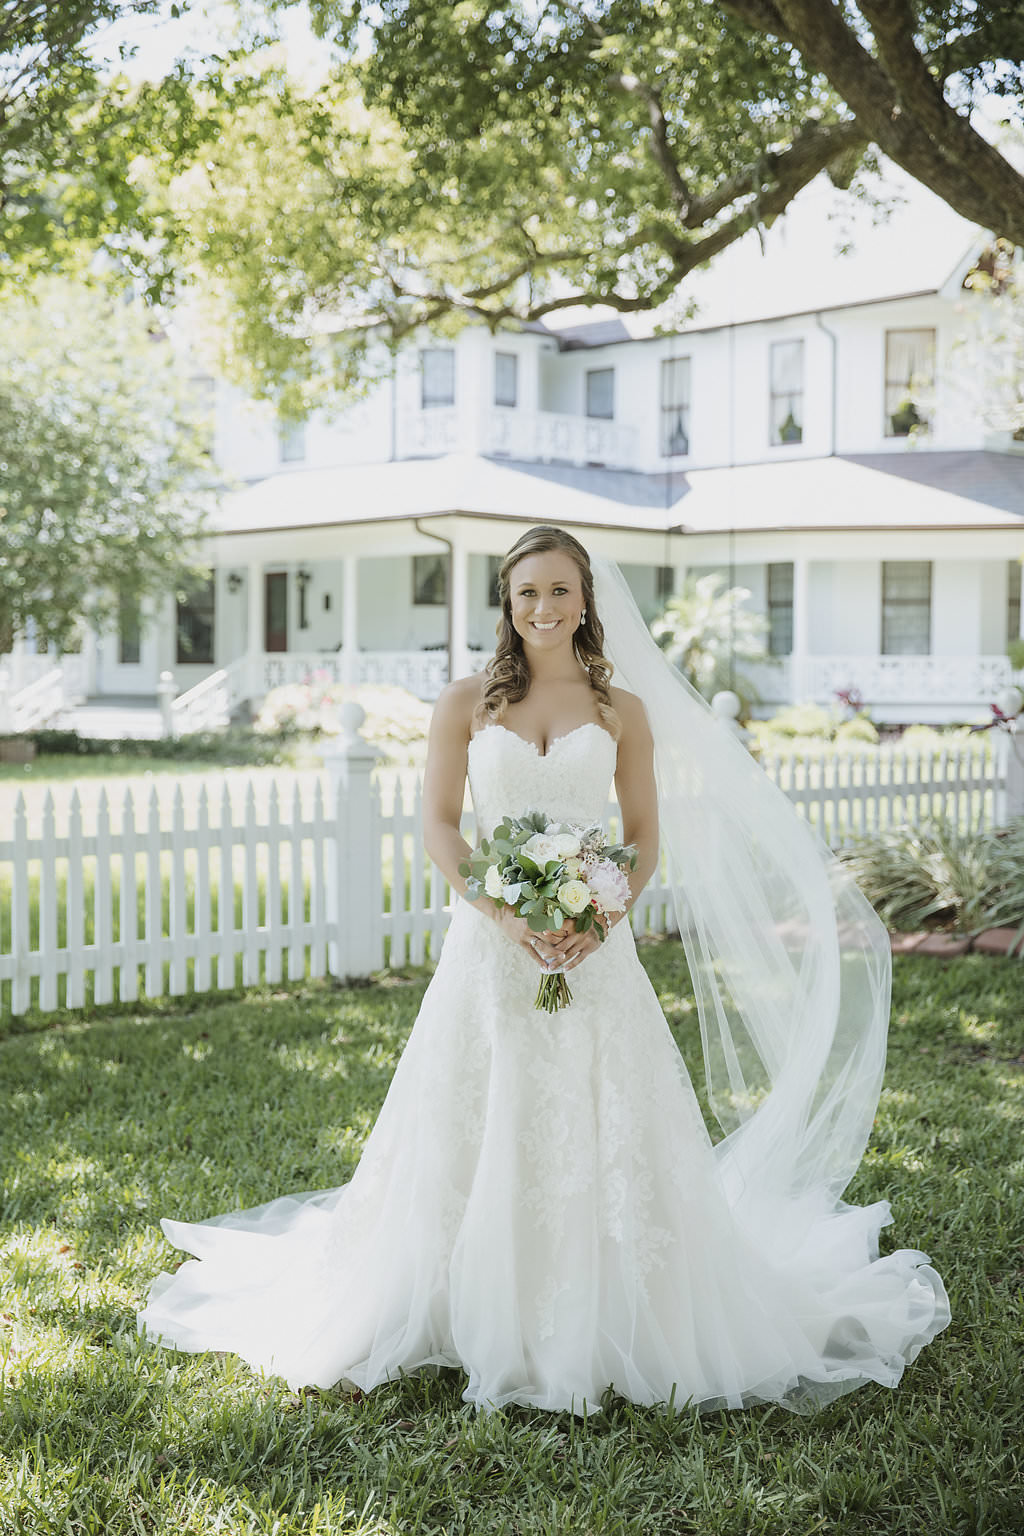 Outdoor Garden Bridal Portrait with White and Greenery Bouquet, Sweetheart A-Line Dress with Cathedral Train and Long Veil | Florida Wedding Venue Palmetto Riverside Bed and Breakfast